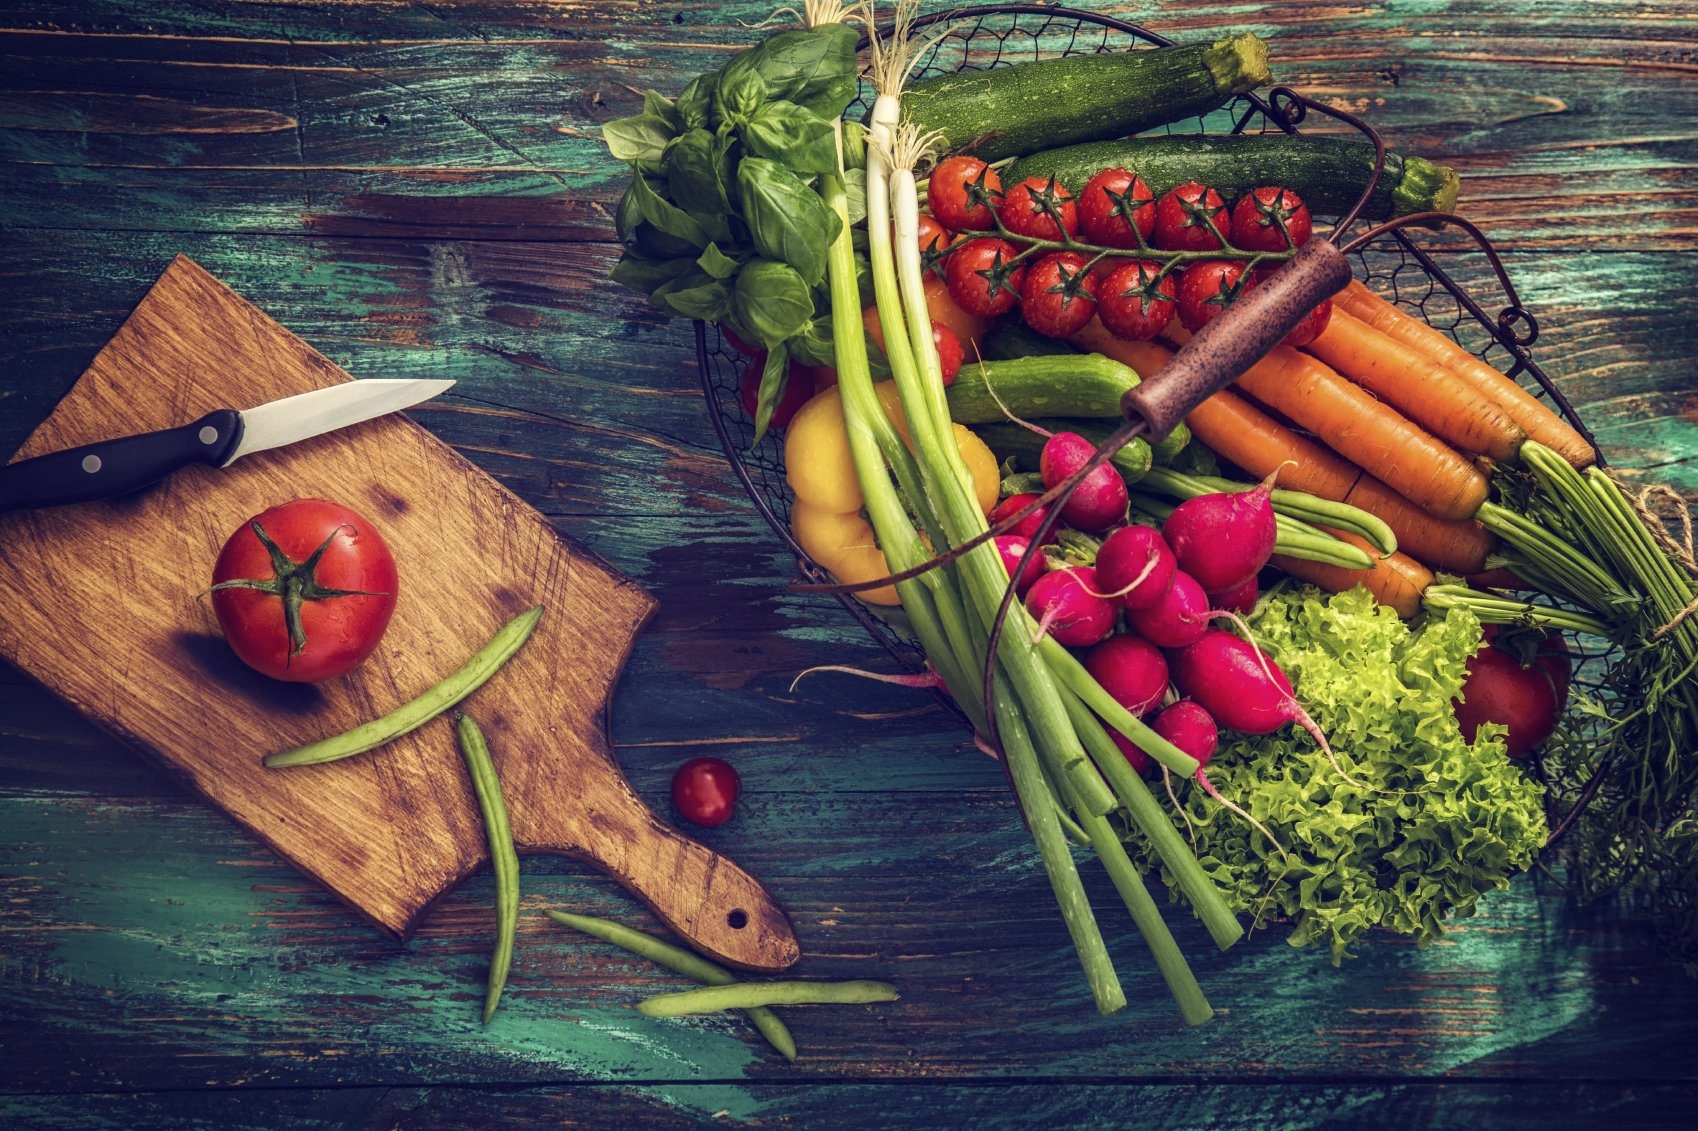 Phytochemicals give fruits and vegetables their bright colors